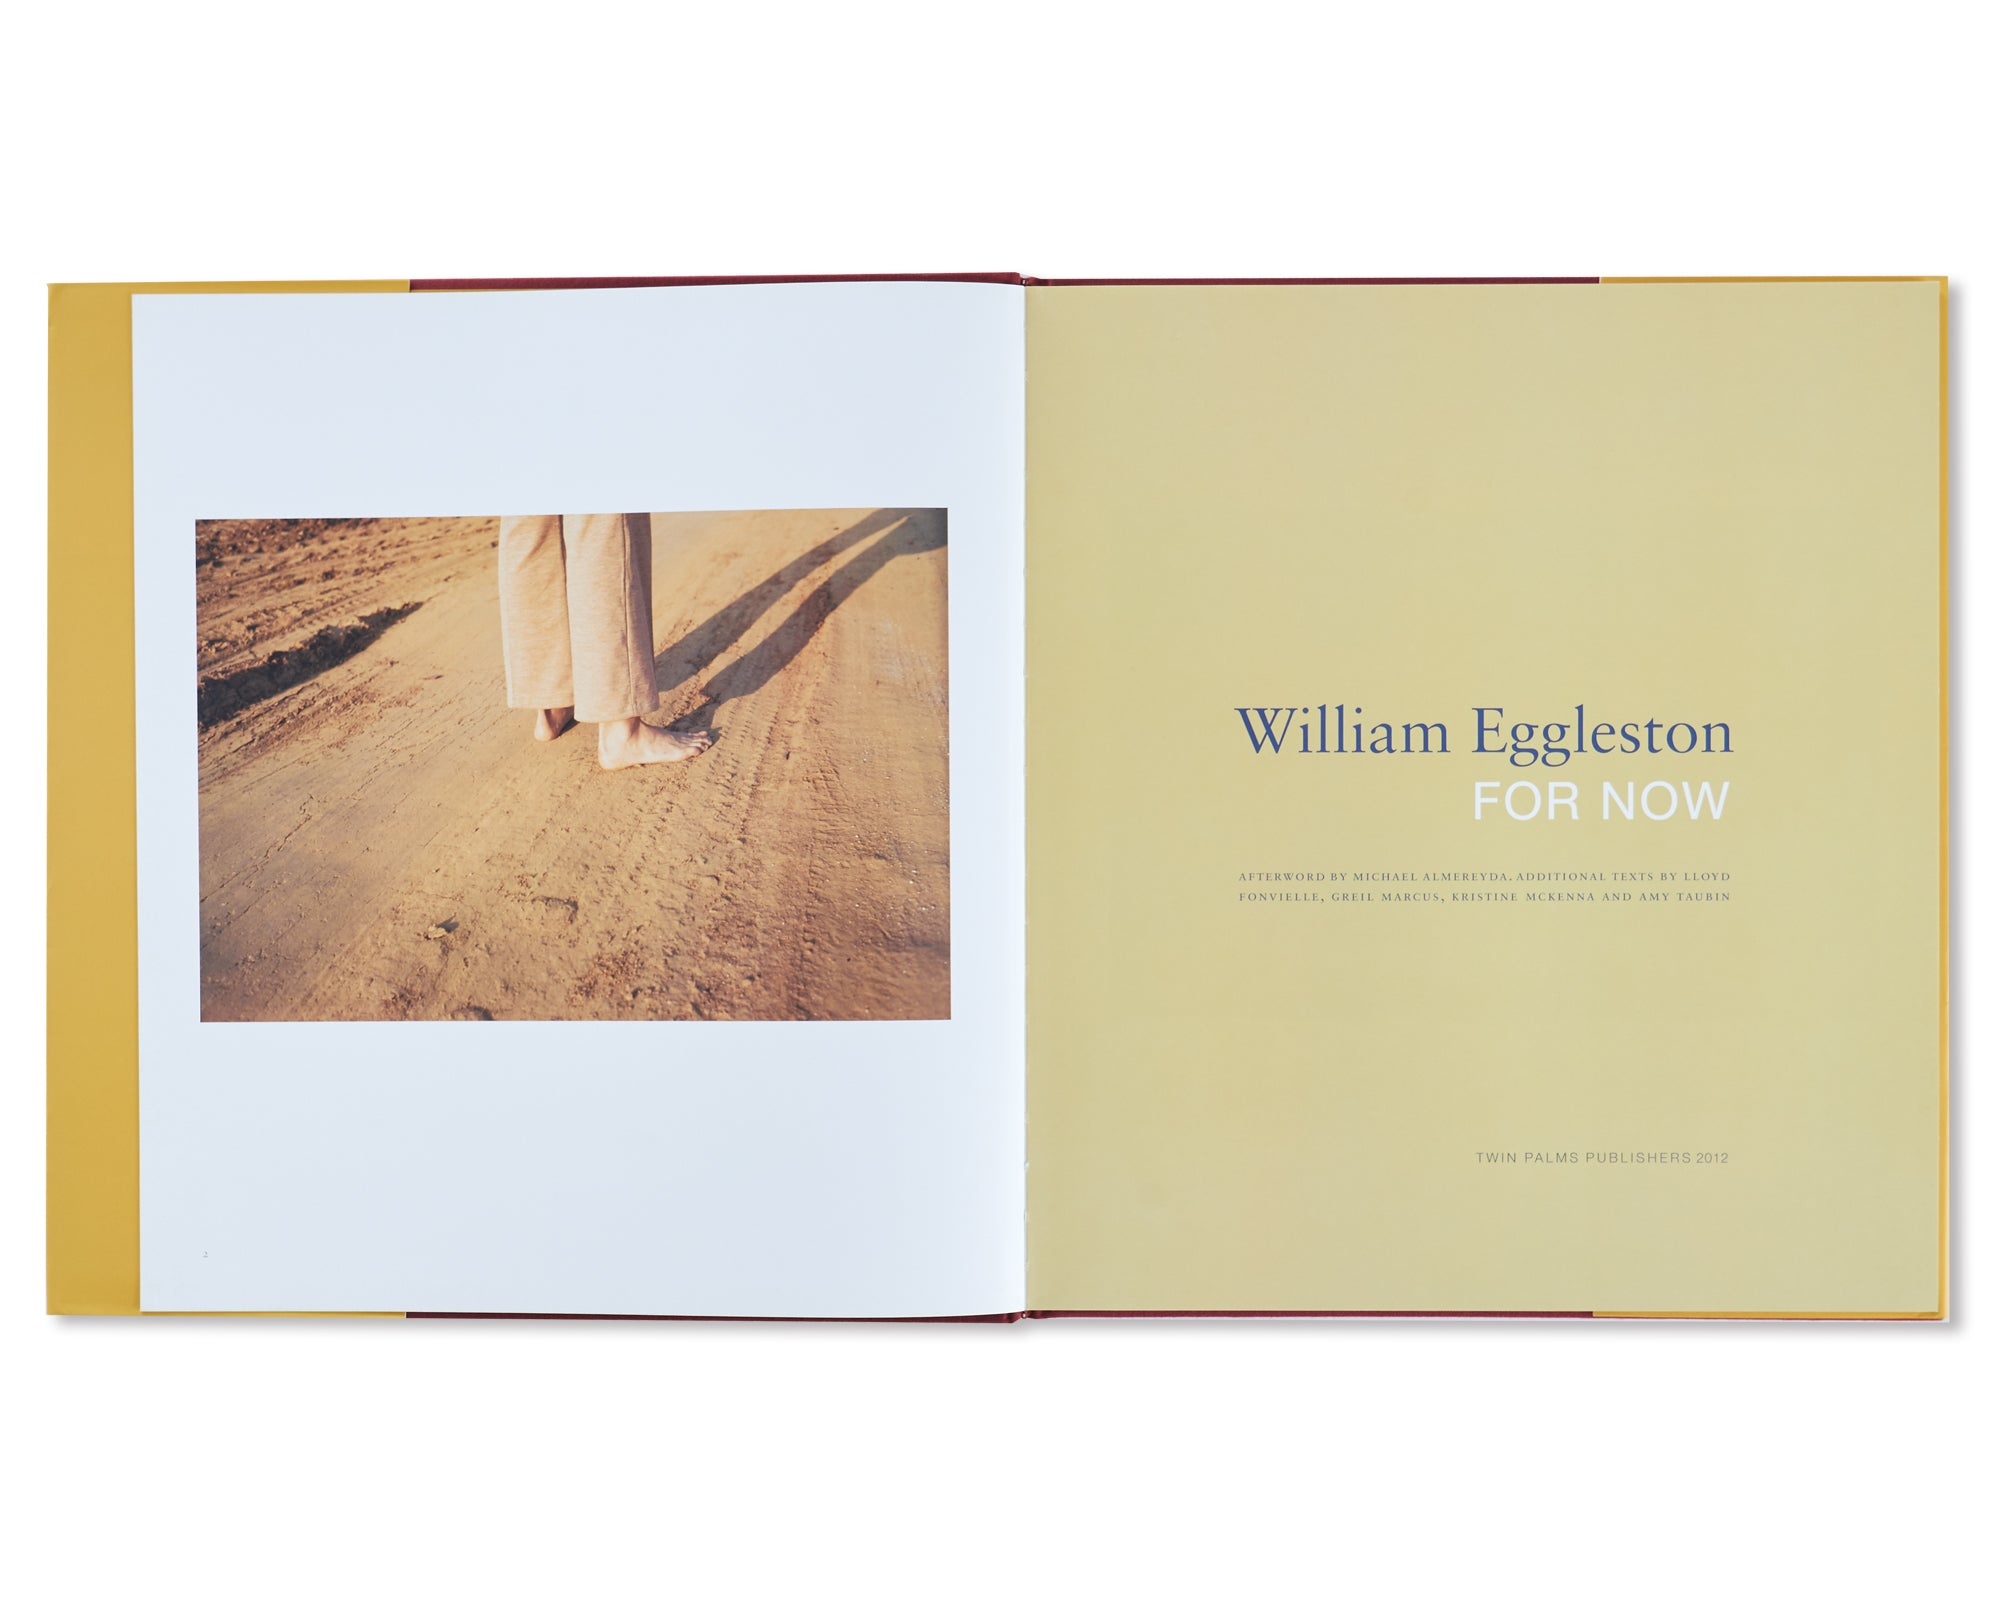 FOR NOW by William Eggleston